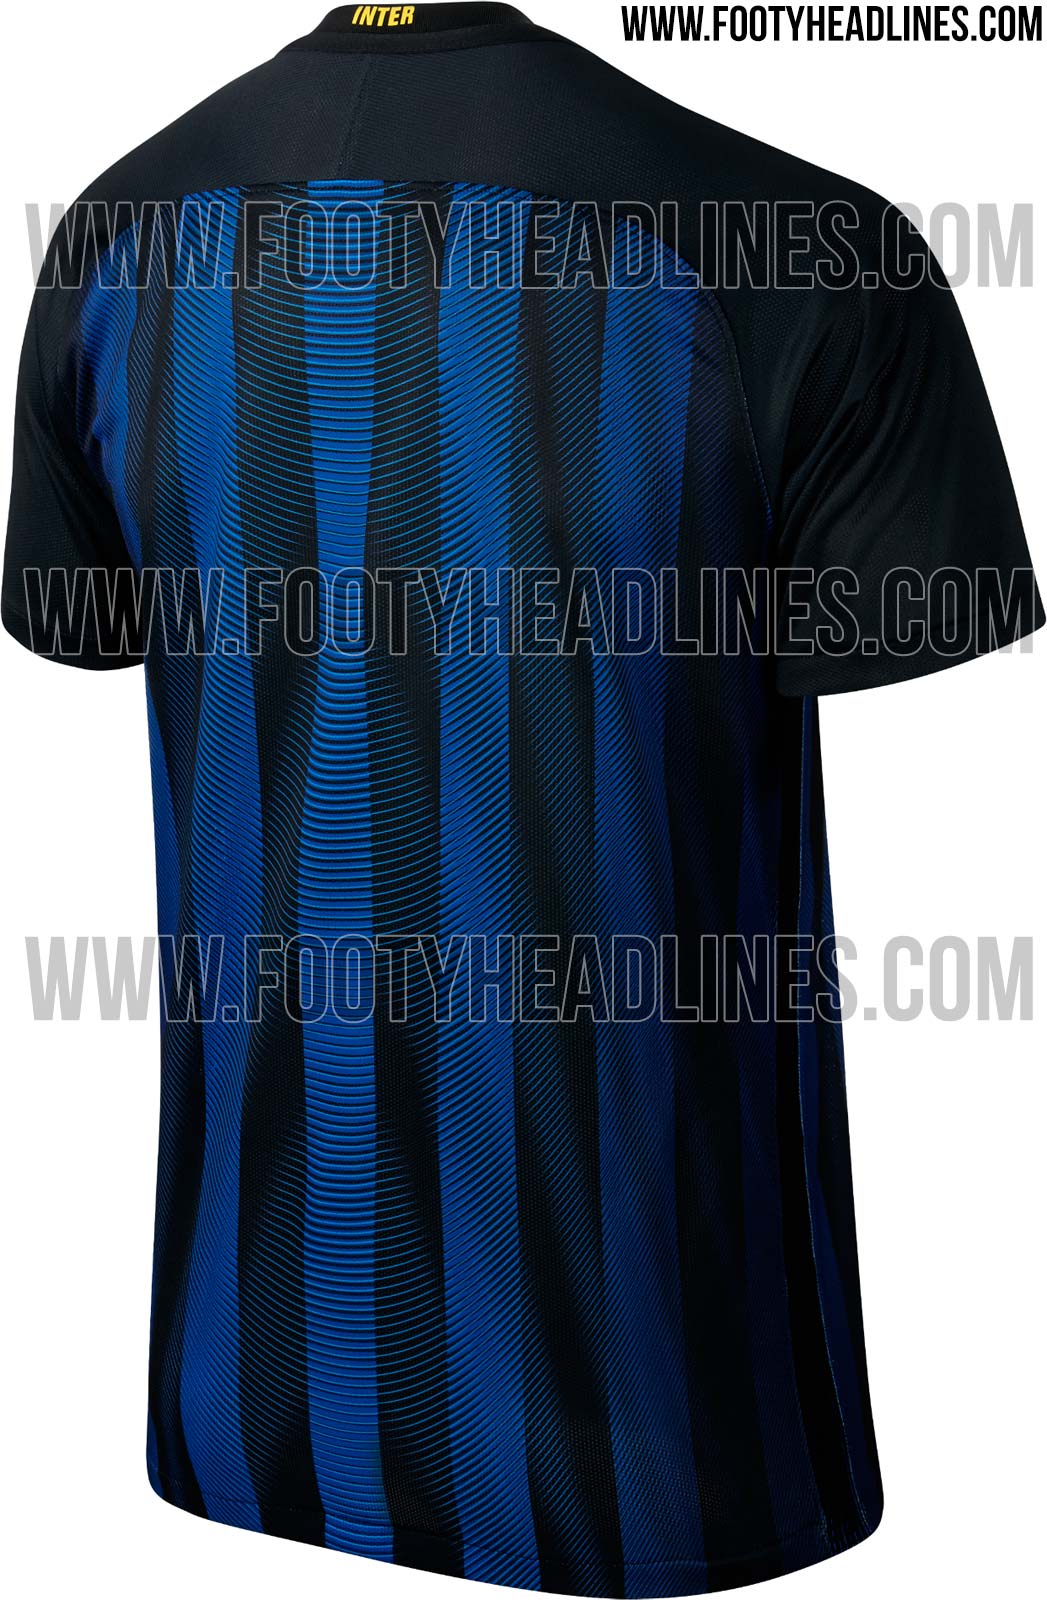 inter-milan-16-17-kit-3